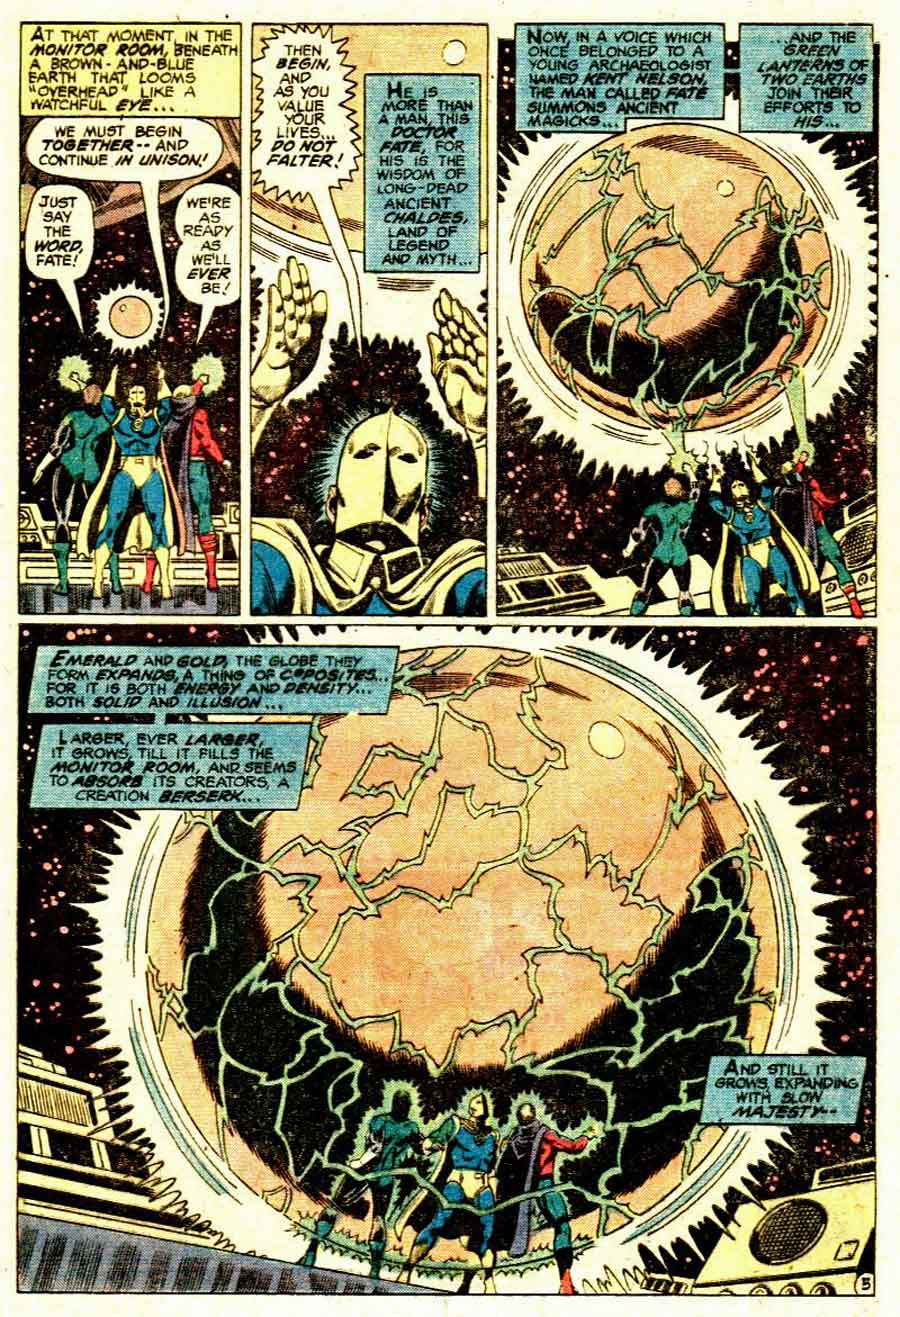 Justice League of America #172 by Gerry Conway, Dick Dillin, and Frank McLaughlin